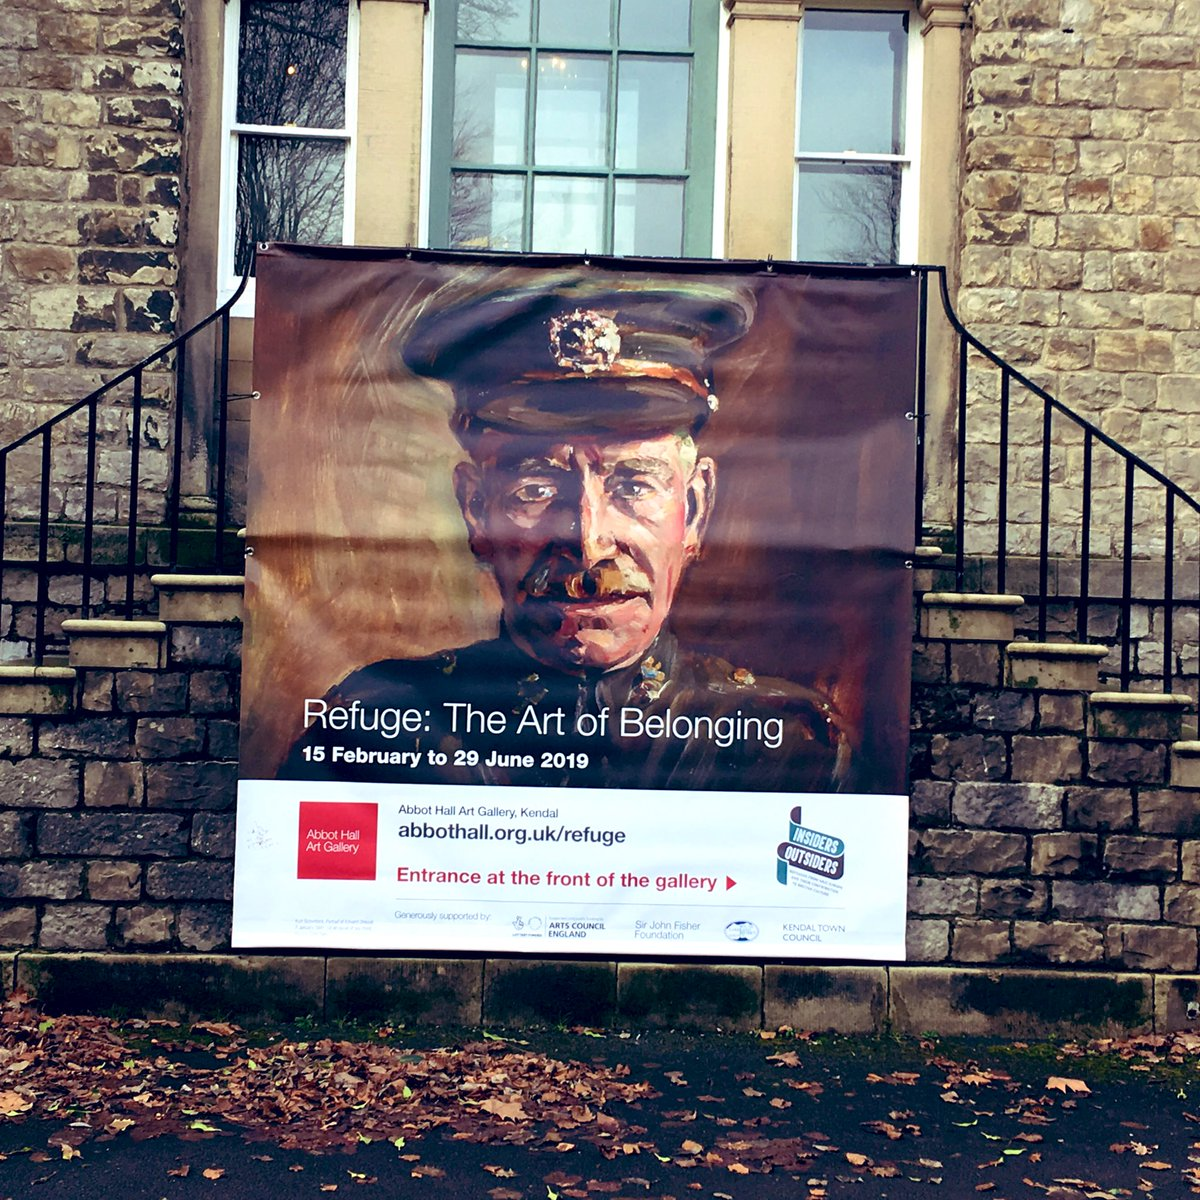 Opening tomorrow (Fri 15 Feb) Refuge: The Art of Belonging. Abbot Hall Art Gallery, #Kendal, #Cumbria. The artists who fled Nazi Europe and their contribution to British culture. #Schwitters #Goldschmidt #Auerbach #Freud #Coper & more. Not to be missed. Part of @iofestival